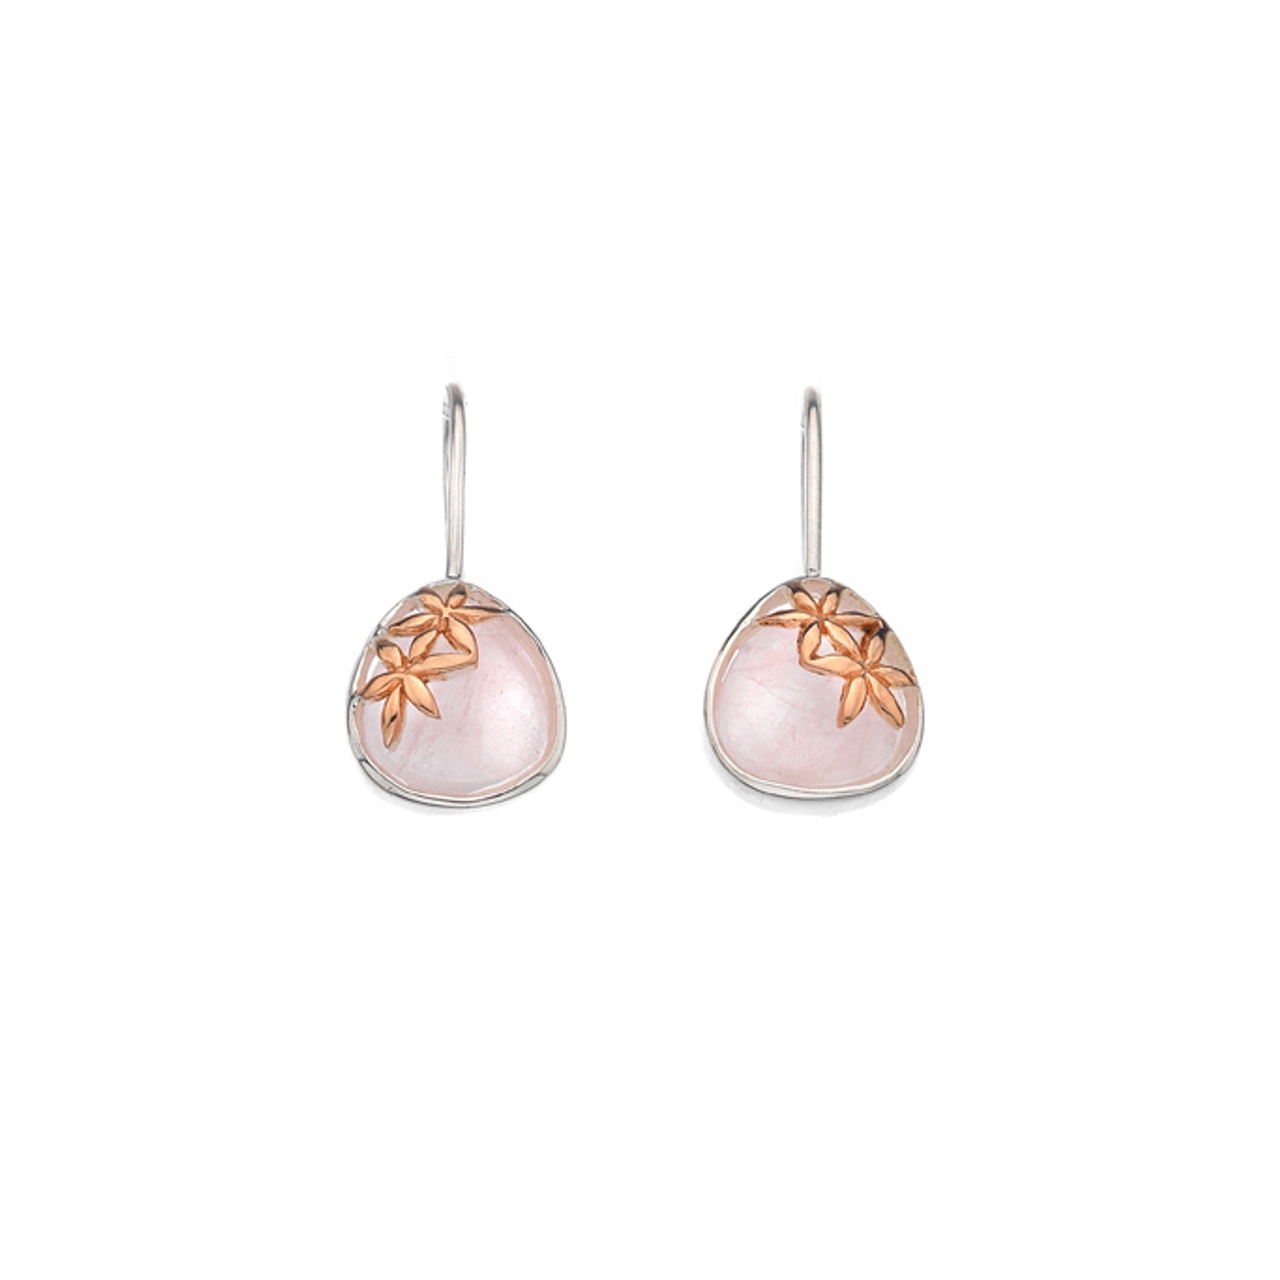 Silver & Rose Gold plated Rose Quartz Drop Earrings